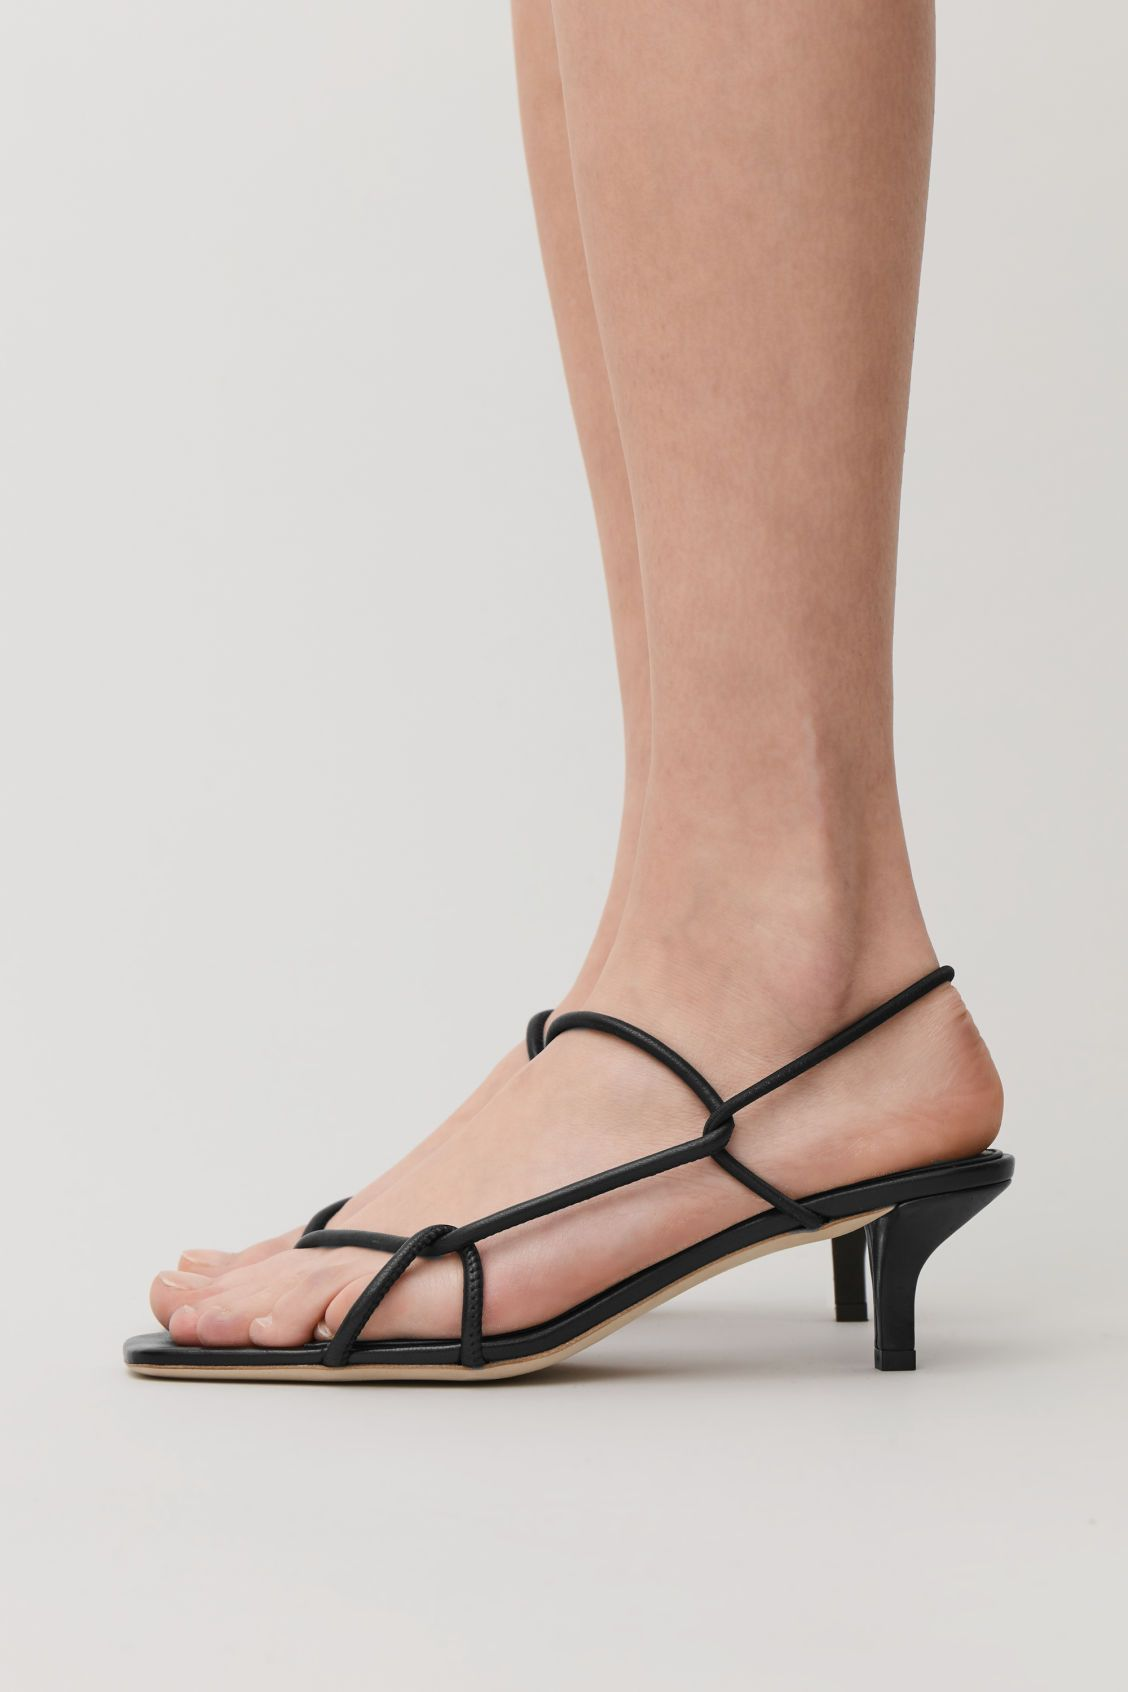 Strappy Leather Kitten Heel Sandals Black Shoes Cos Kitten Heel Sandals Black Sandals Heels Kitten Heels